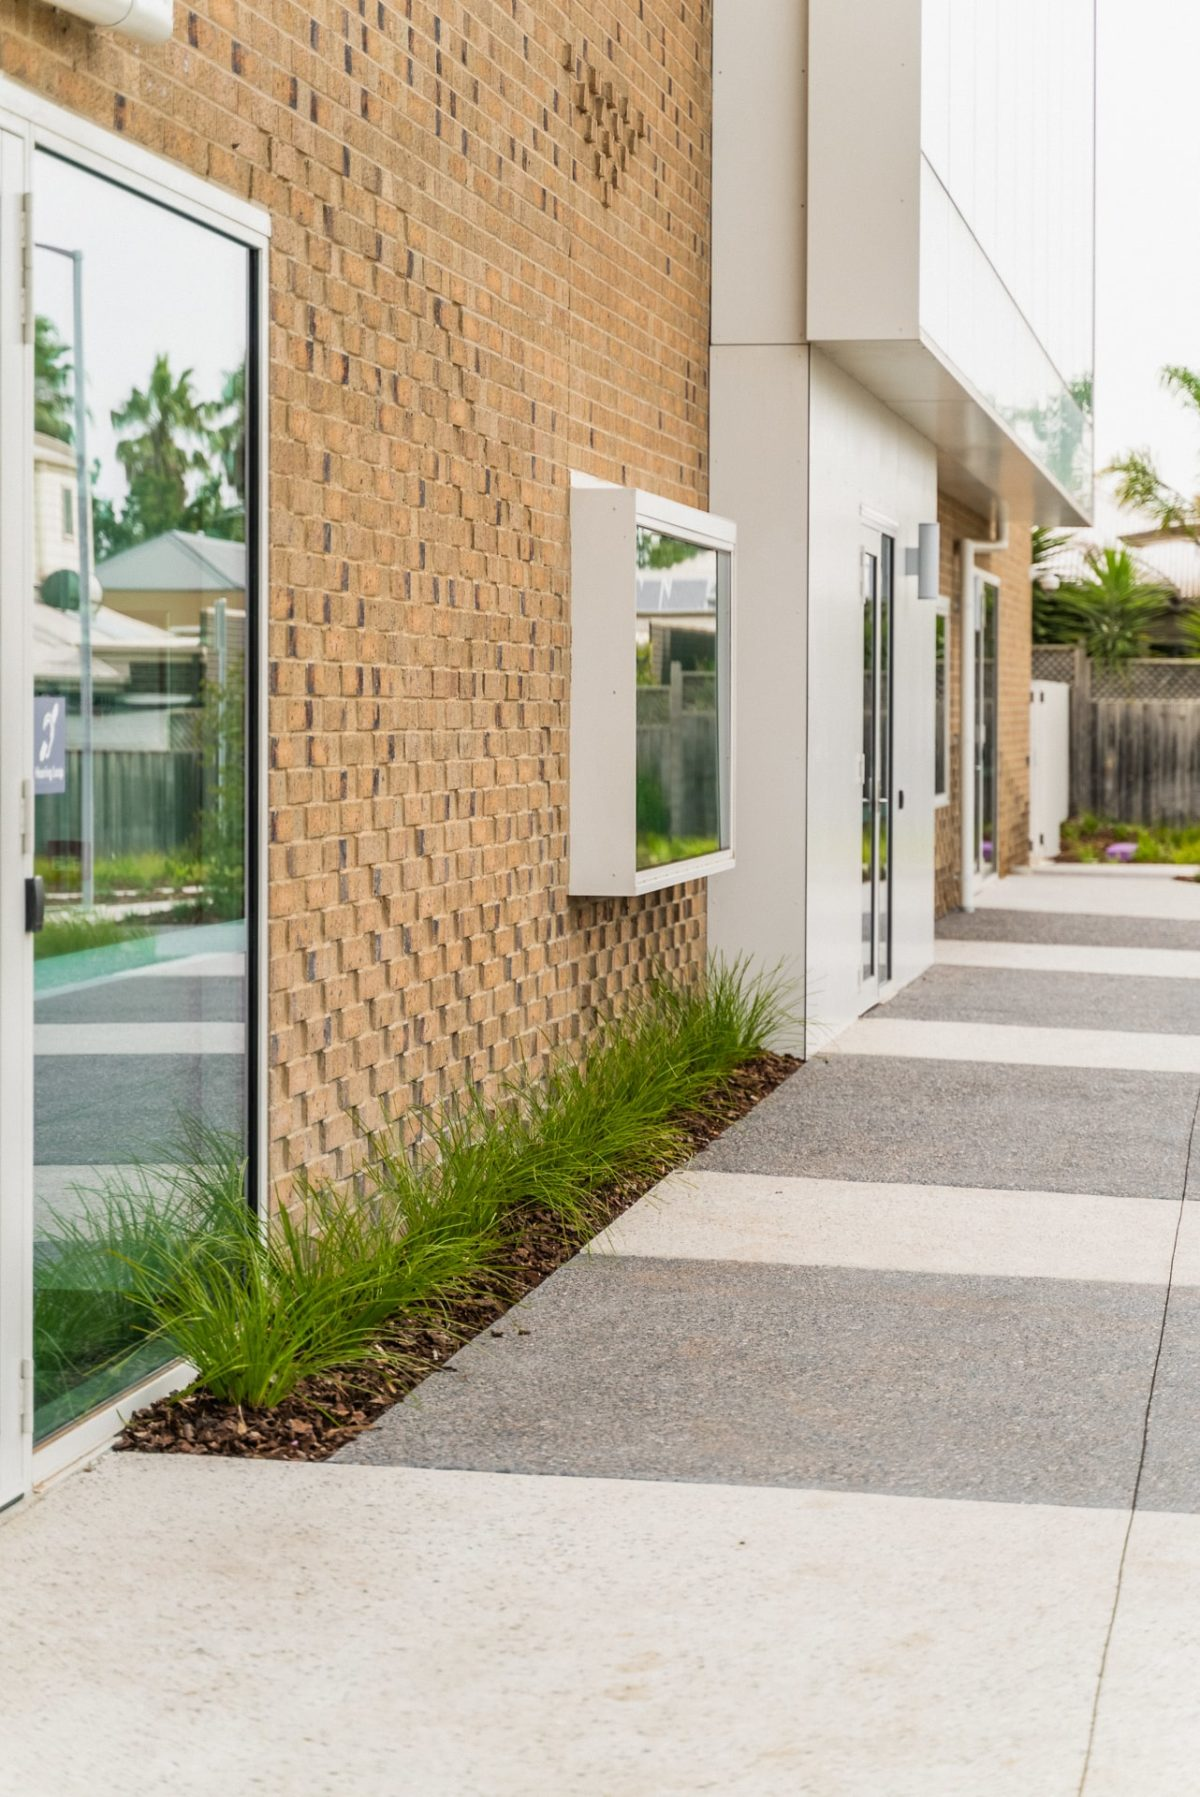 Concrete Path in Exposed Aggregate Concrete